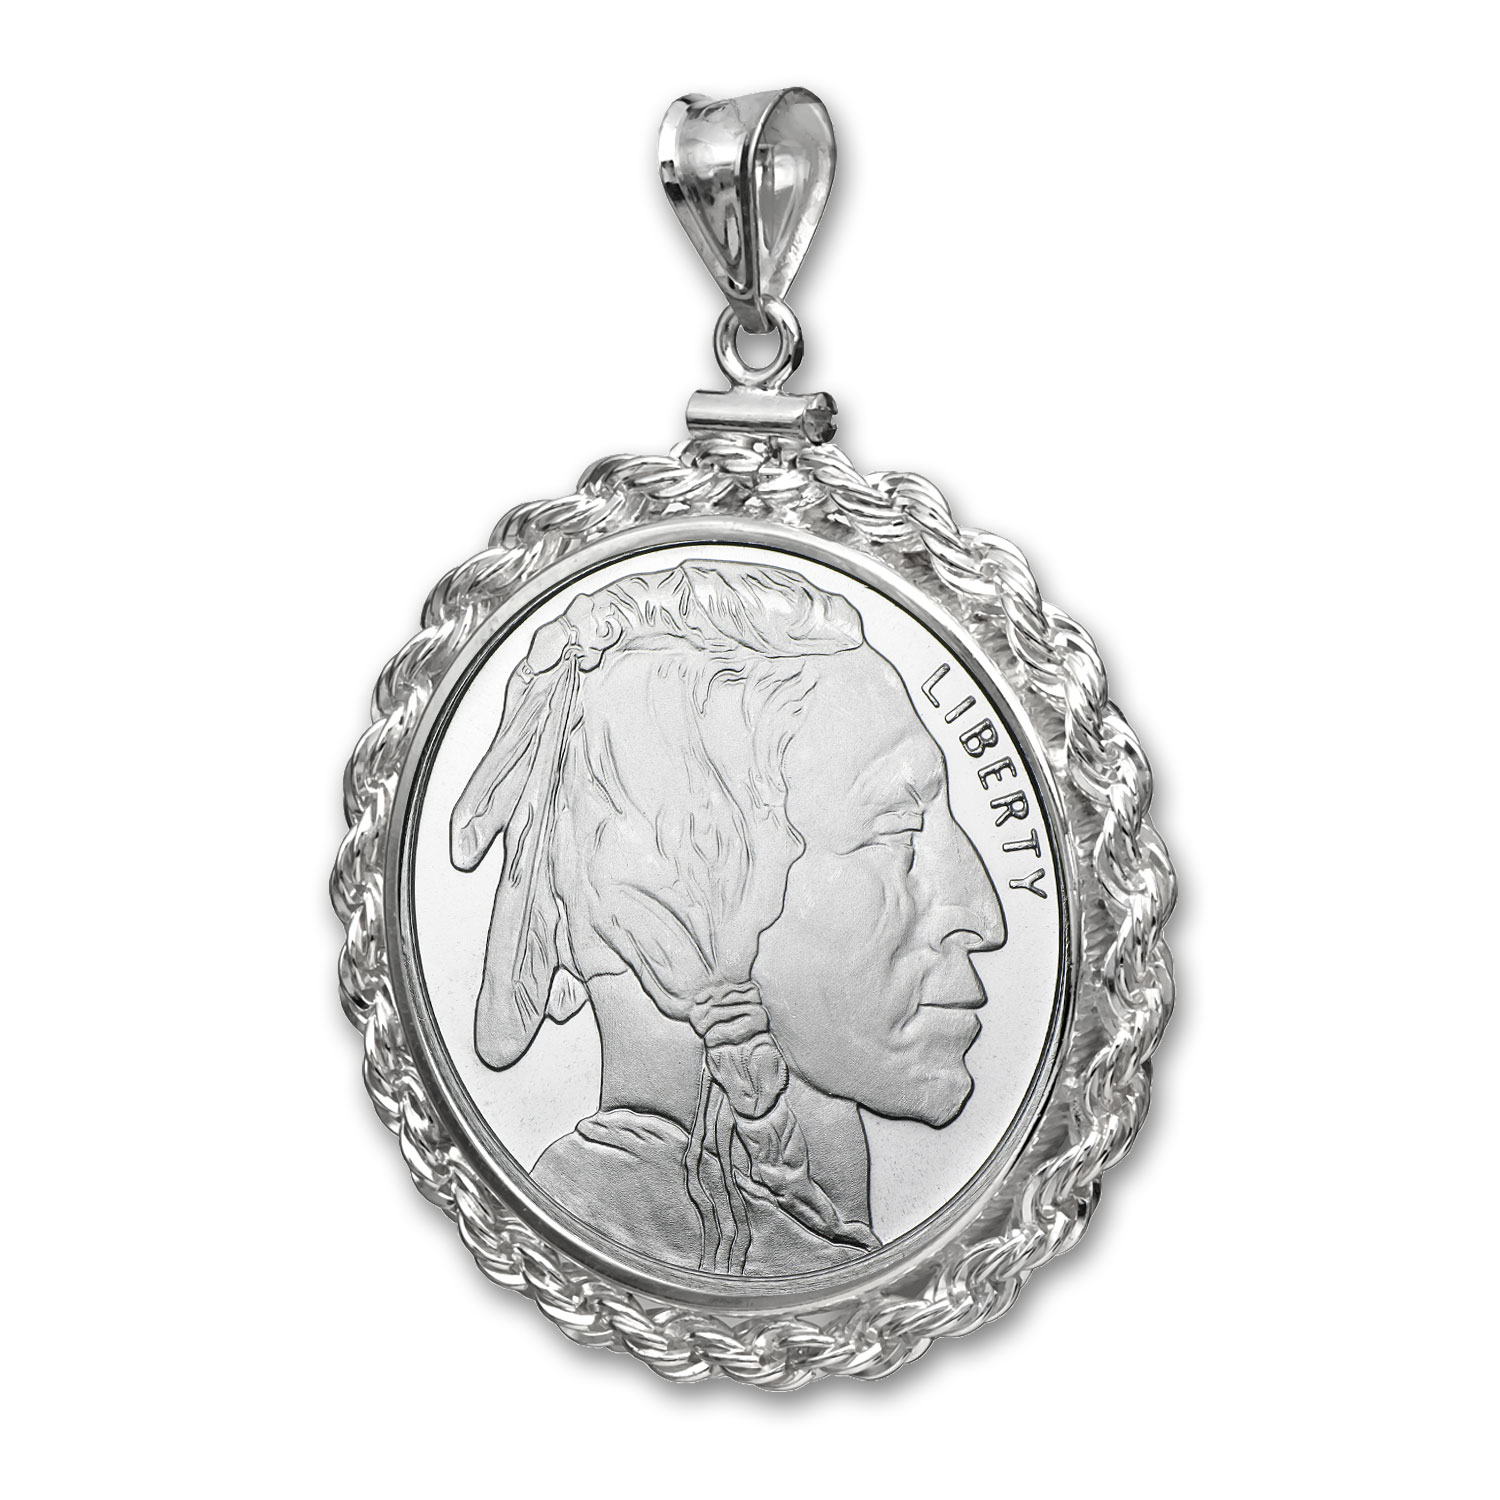 1 oz Silver Buffalo Pendant (Rope-ScrewTop Bezel)